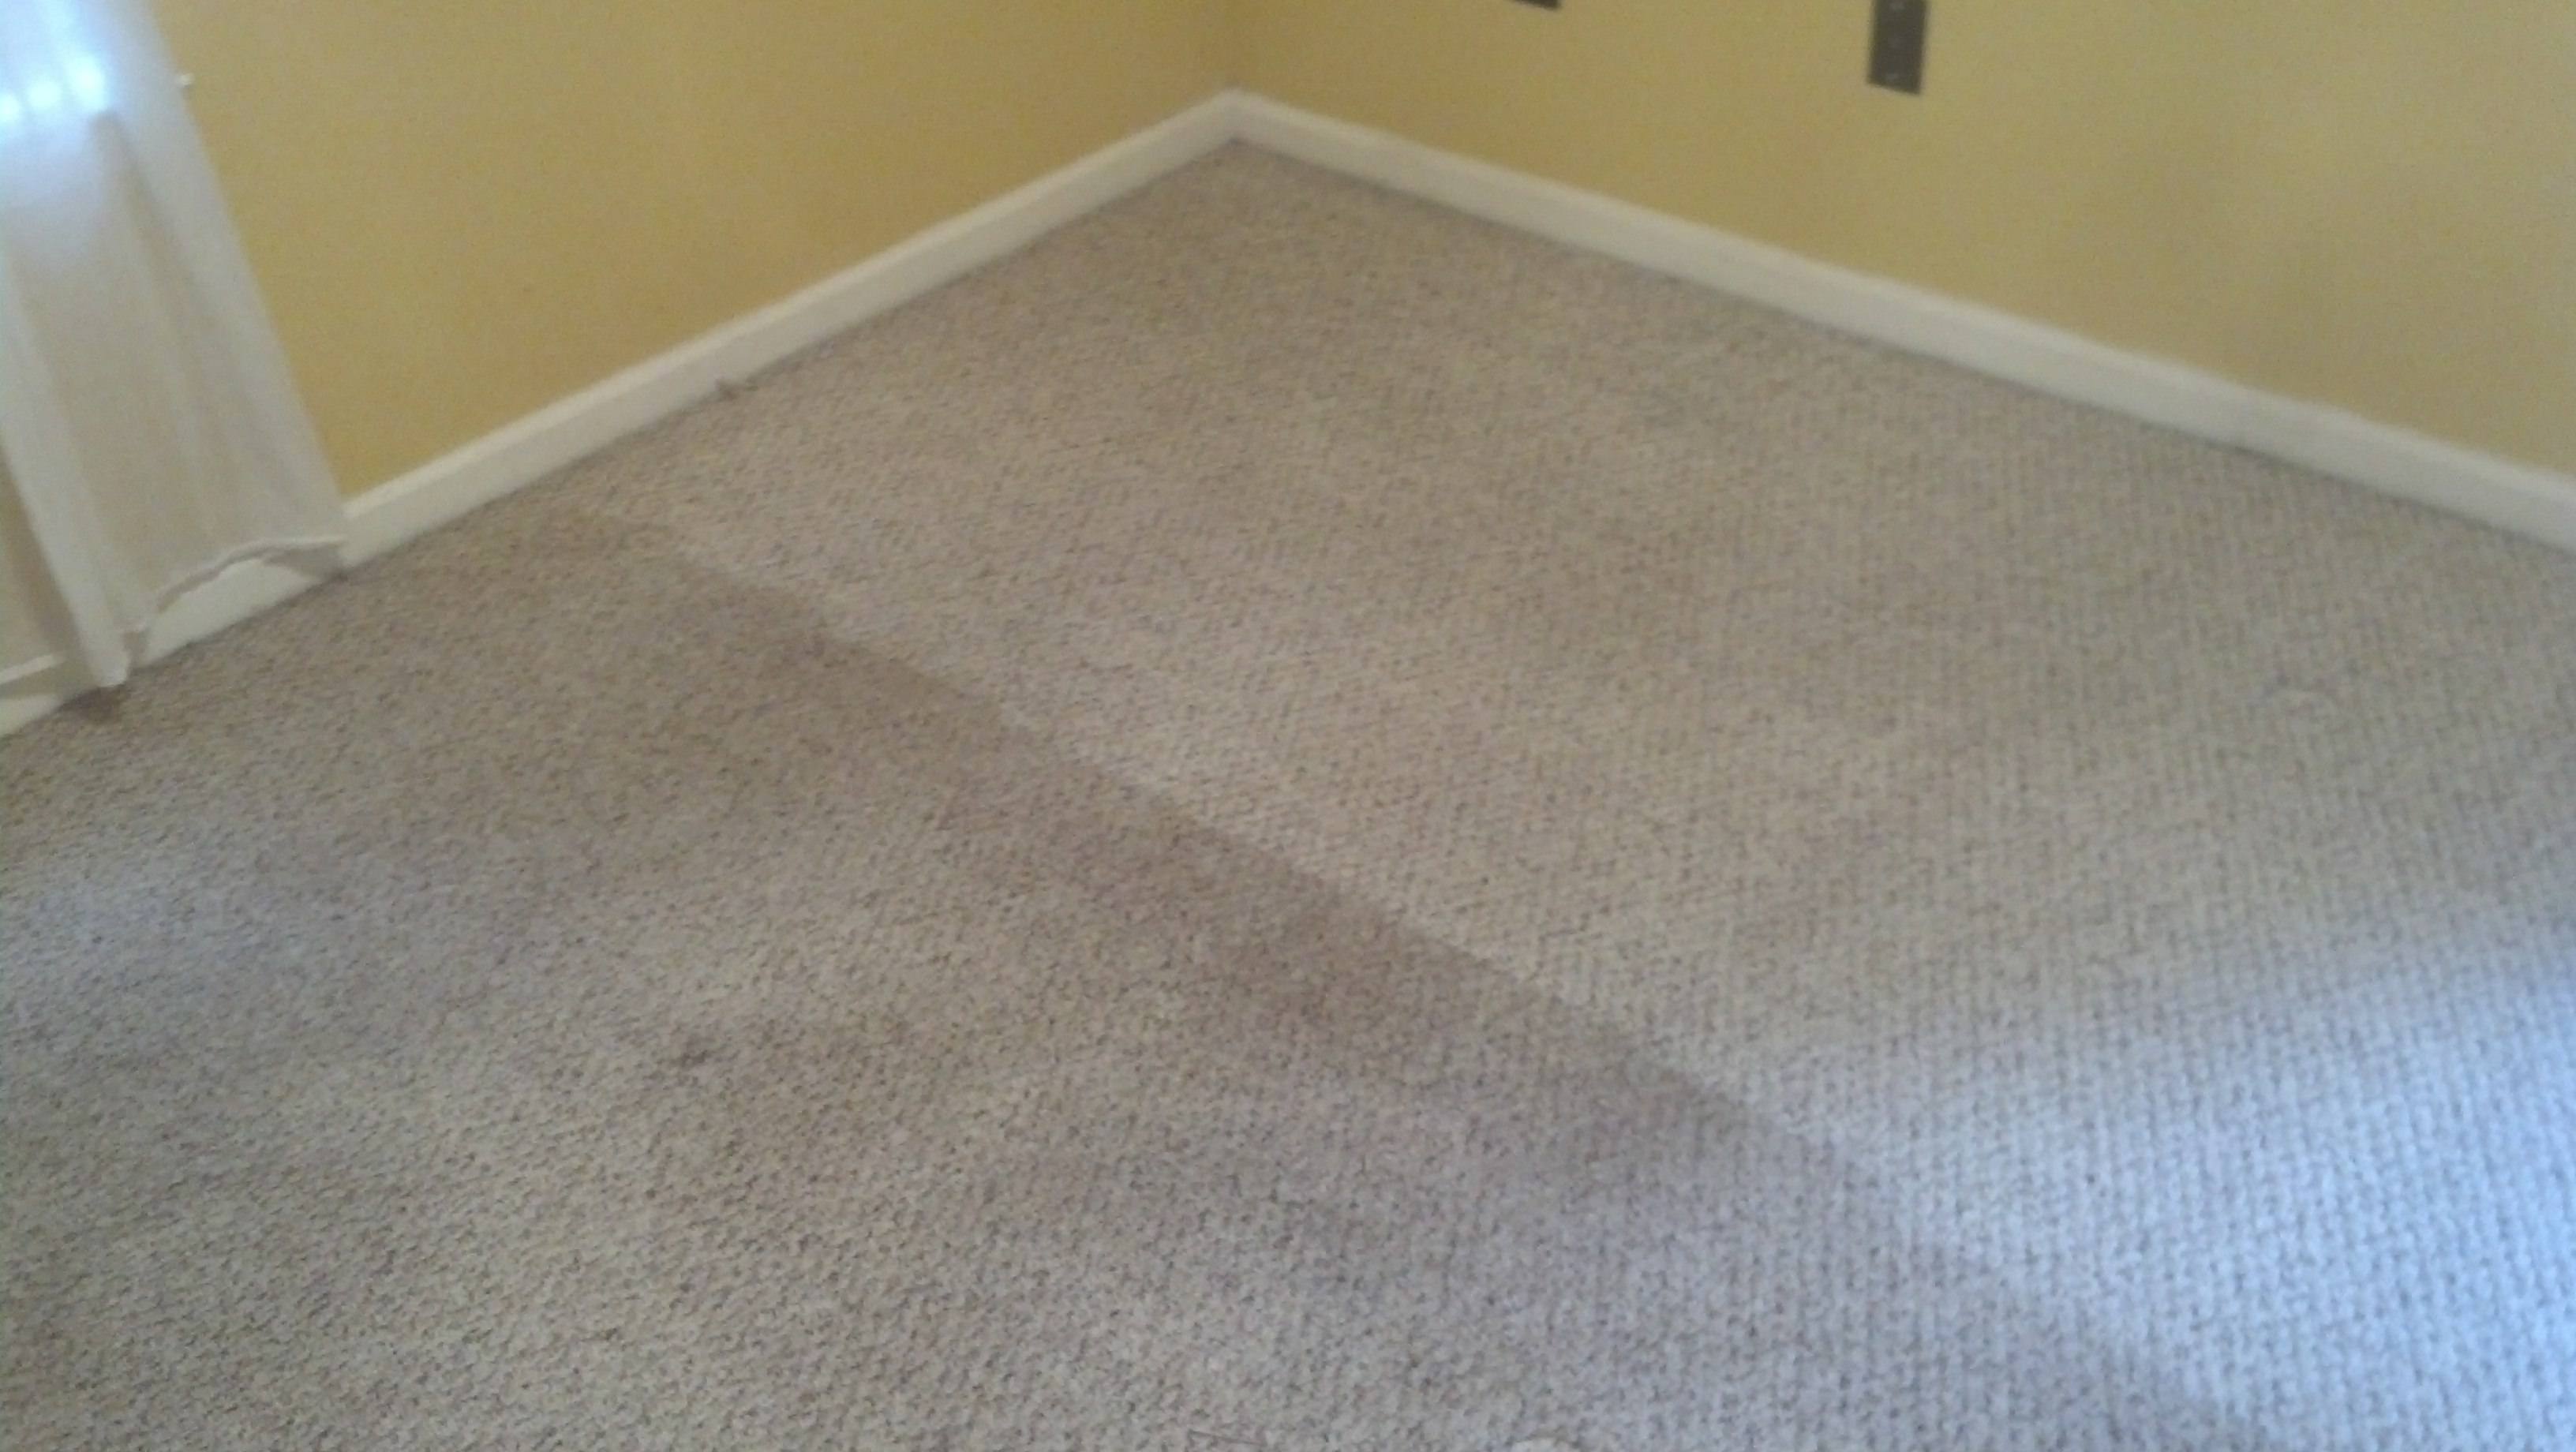 Carpet Cleaning Company Peachtree City Fayetteville